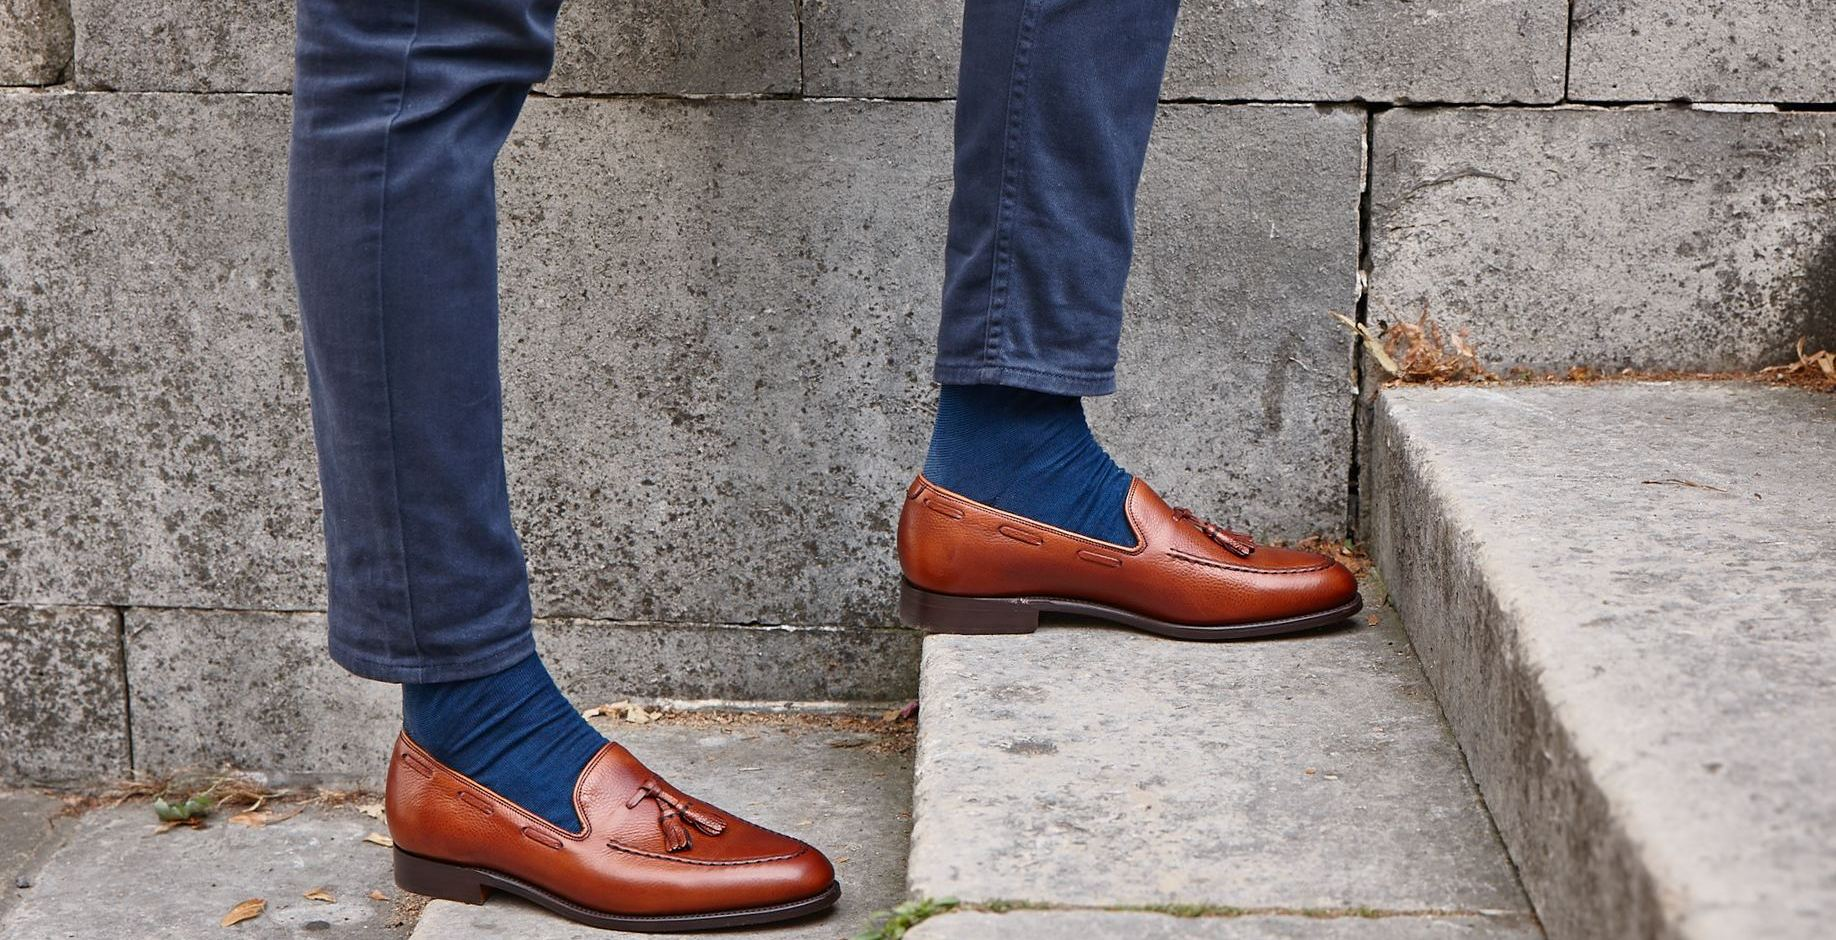 Newborough tassel loafer shoes by Barker.